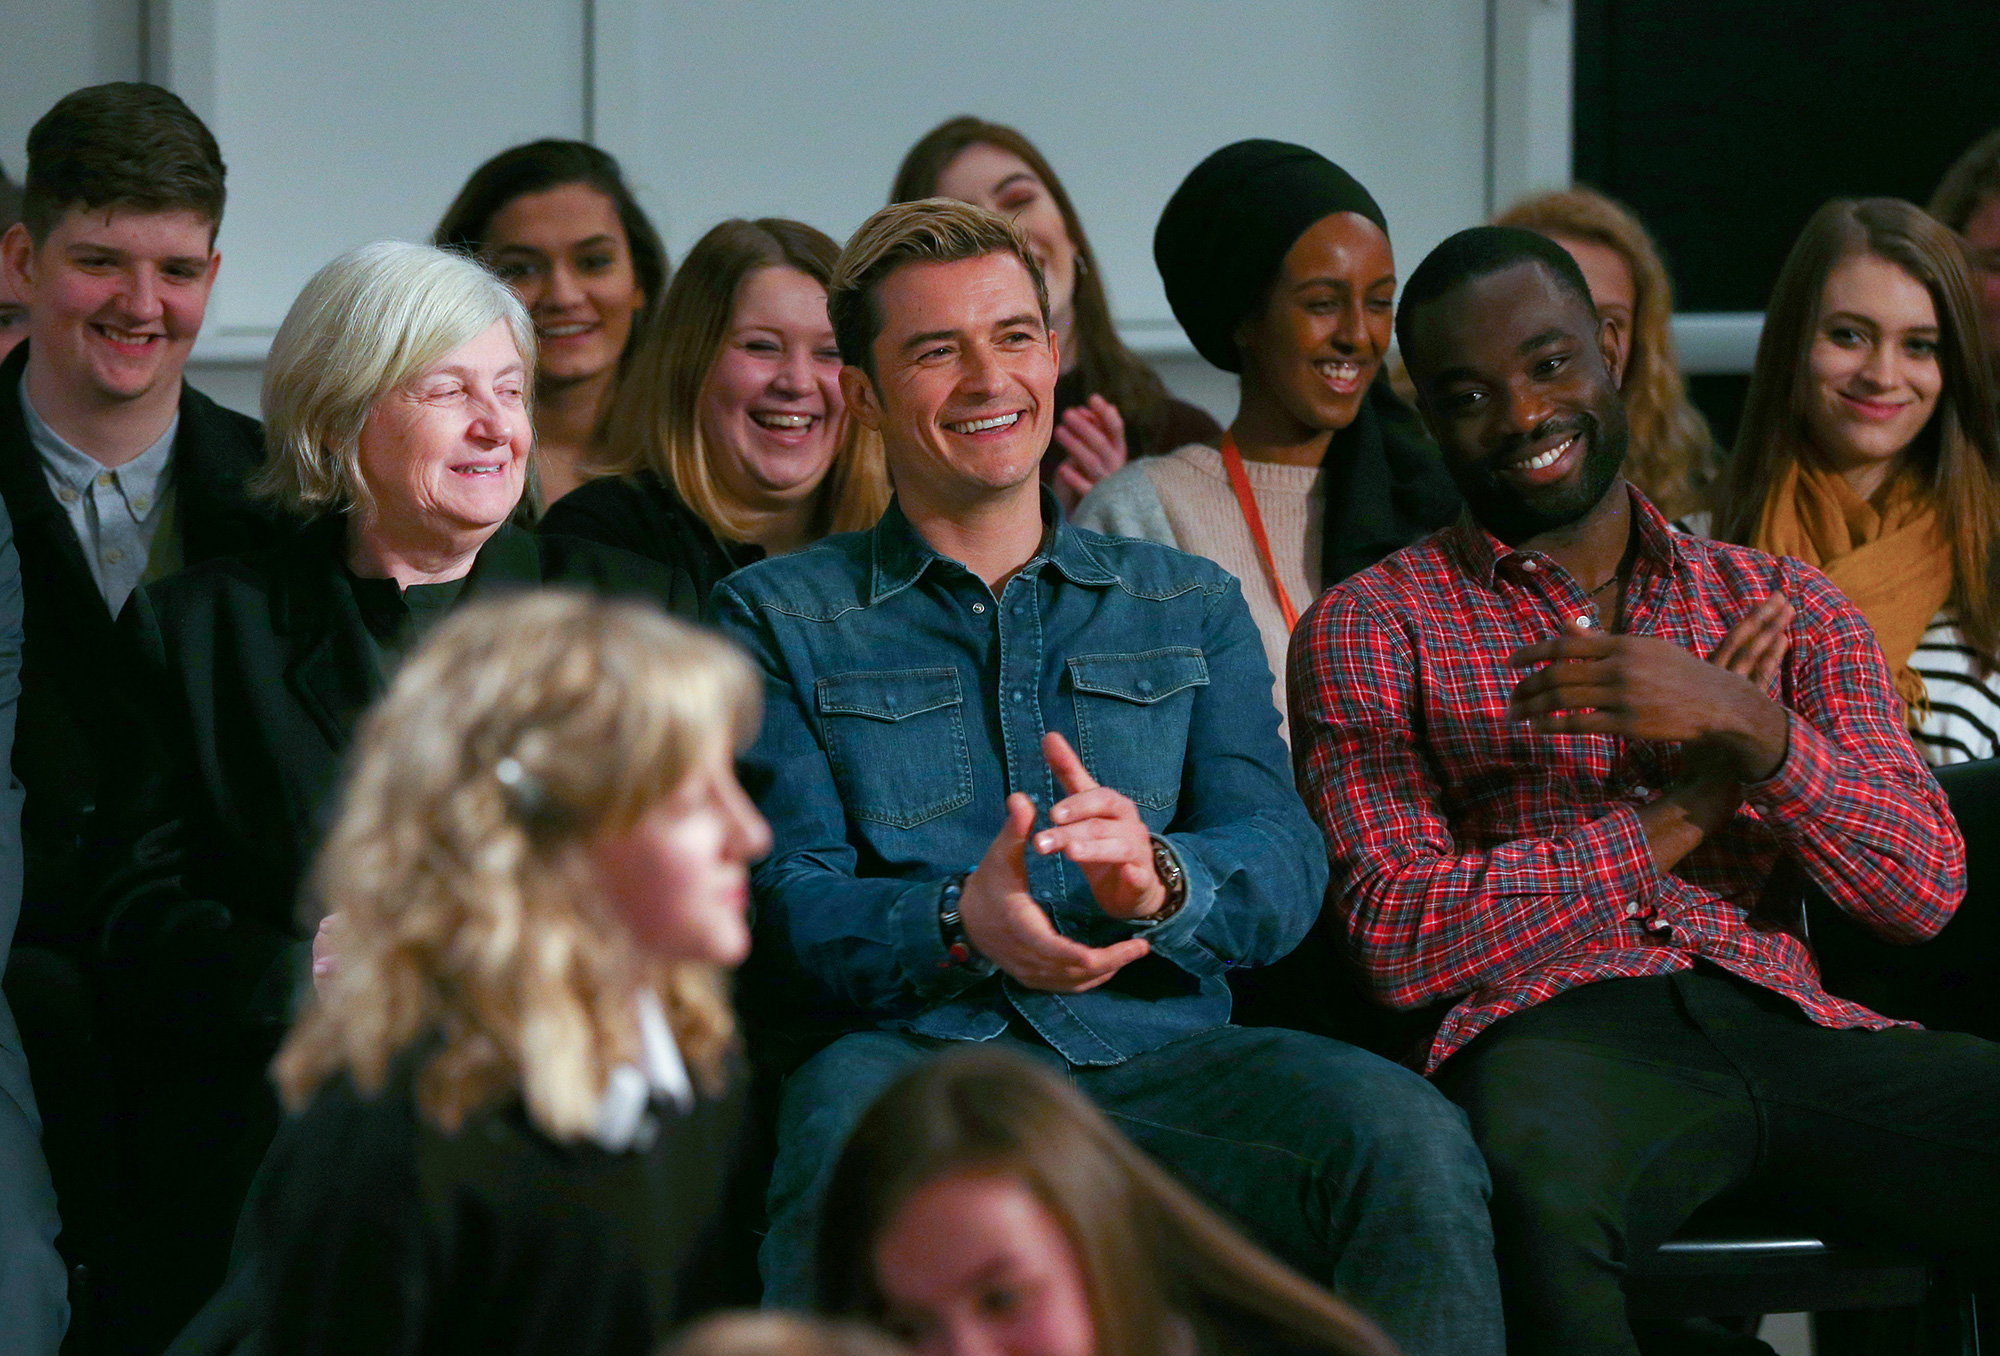 USA Rights Only - Cheadle, UK - 1/27/17 The Laurus Trust launch held at Cheadle Hulme High School. The Trust has co-created its own Curriculum with Patsy Rodenburg, and two of her former pupils - Orlando Bloom and Paapa Essiedu - who are helping run workshops along with the Royal Shakespeare Company - showcasing the ethos and type of work that will be embedded in Laurus Trust schools. -PICTURED: Orlando Bloom -PHOTO by: Dave Thompson/PA Images/INSTARimages.com -INSTAR_Laurus_Trust_Launch_3341819595.JPG Editorial Rights Managed Image - Please contact www.INSTARimages.com for licensing fee and rights: North America Inquiries: email sales@instarimages.com or call 212.414.0207 - UK Inquiries: email ben@instarimages.com or call + 7715 698 715 - Australia Inquiries: email sarah@instarimages.com.au †or call +02 9660 0500 ñ for any other Country, please email sales@instarimages.com. †Image or video may not be published in any way that is or might be deemed defamatory, libelous, pornographic, or obscene / Please consult our sales department for any clarification or question you may have - http://www.INSTARimages.com reserves the right to pursue unauthorized users of this image or video. If you are in violation of our intellectual property you may be liable for actual damages, loss of income, and profits you derive from the use of this image or video, and where appropriate, the cost of collection and/or statutory damage.